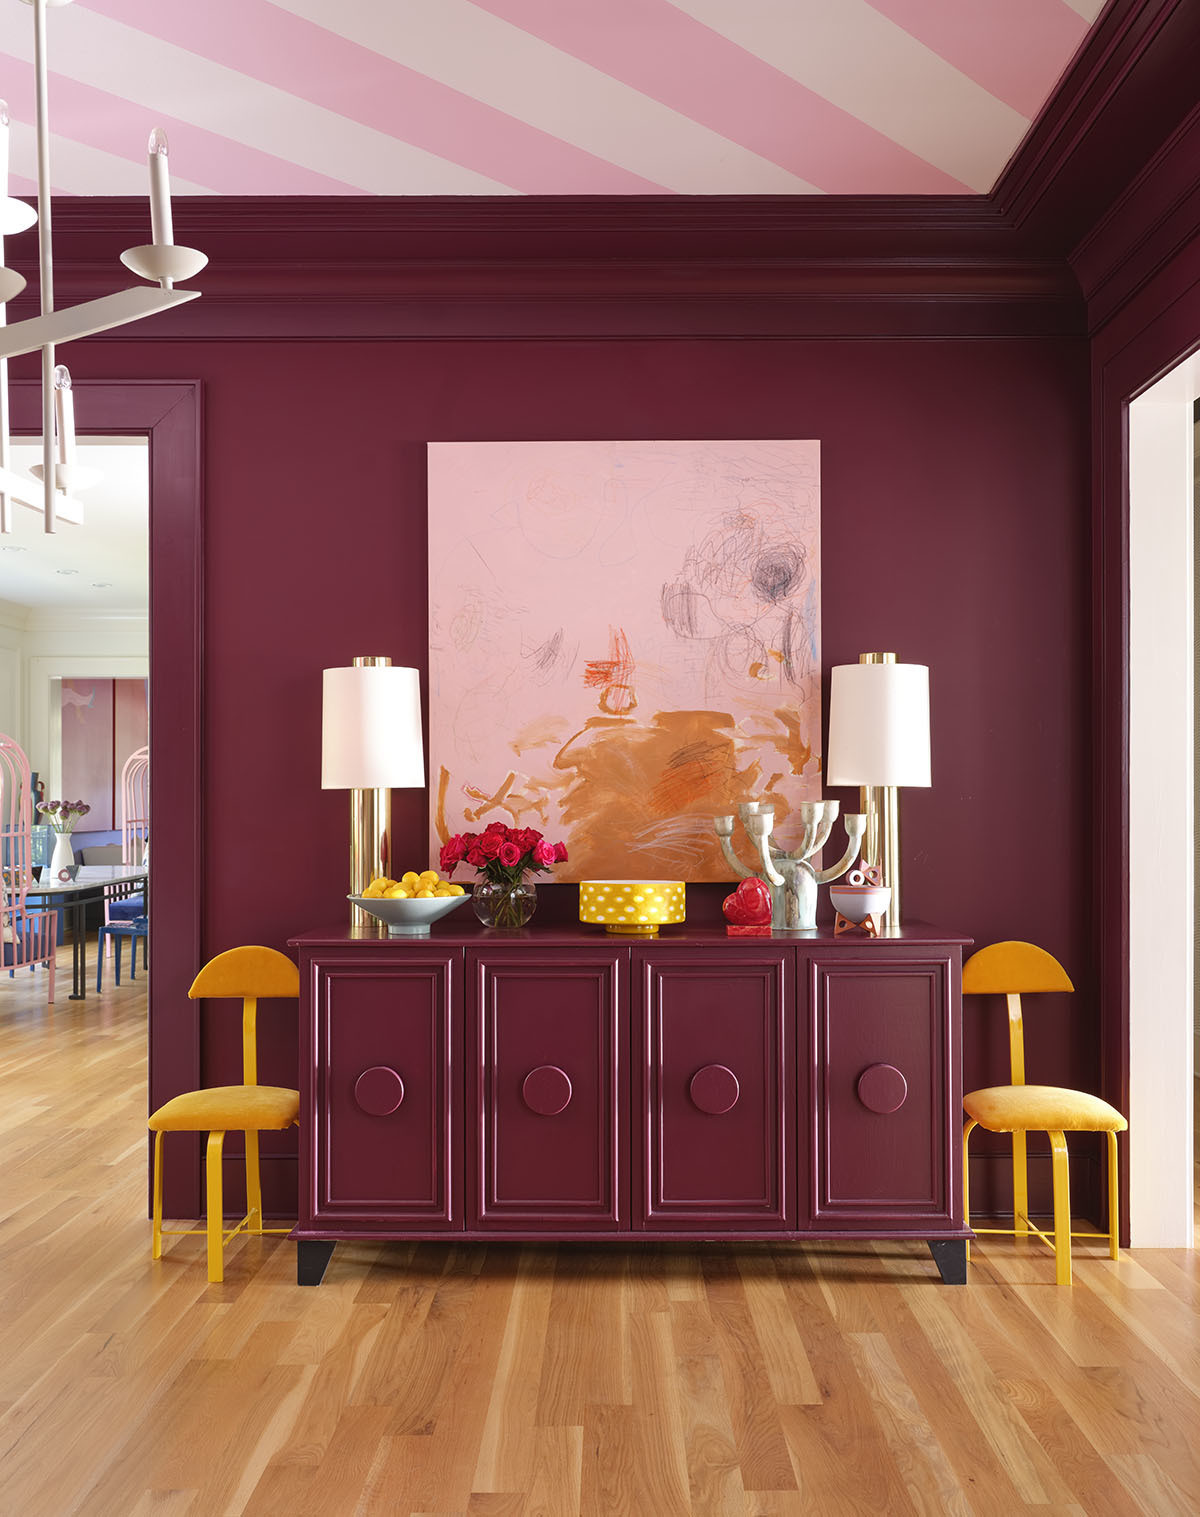 Burgundy, pink, and orange clash in the most spectacular fashion.Benjamin MoorePaint | Custom Side Board | Gillian BryceTable Lamps | VintageAccent Chairs | CustomCeiling Decal | Artwork by Blehm's Children |